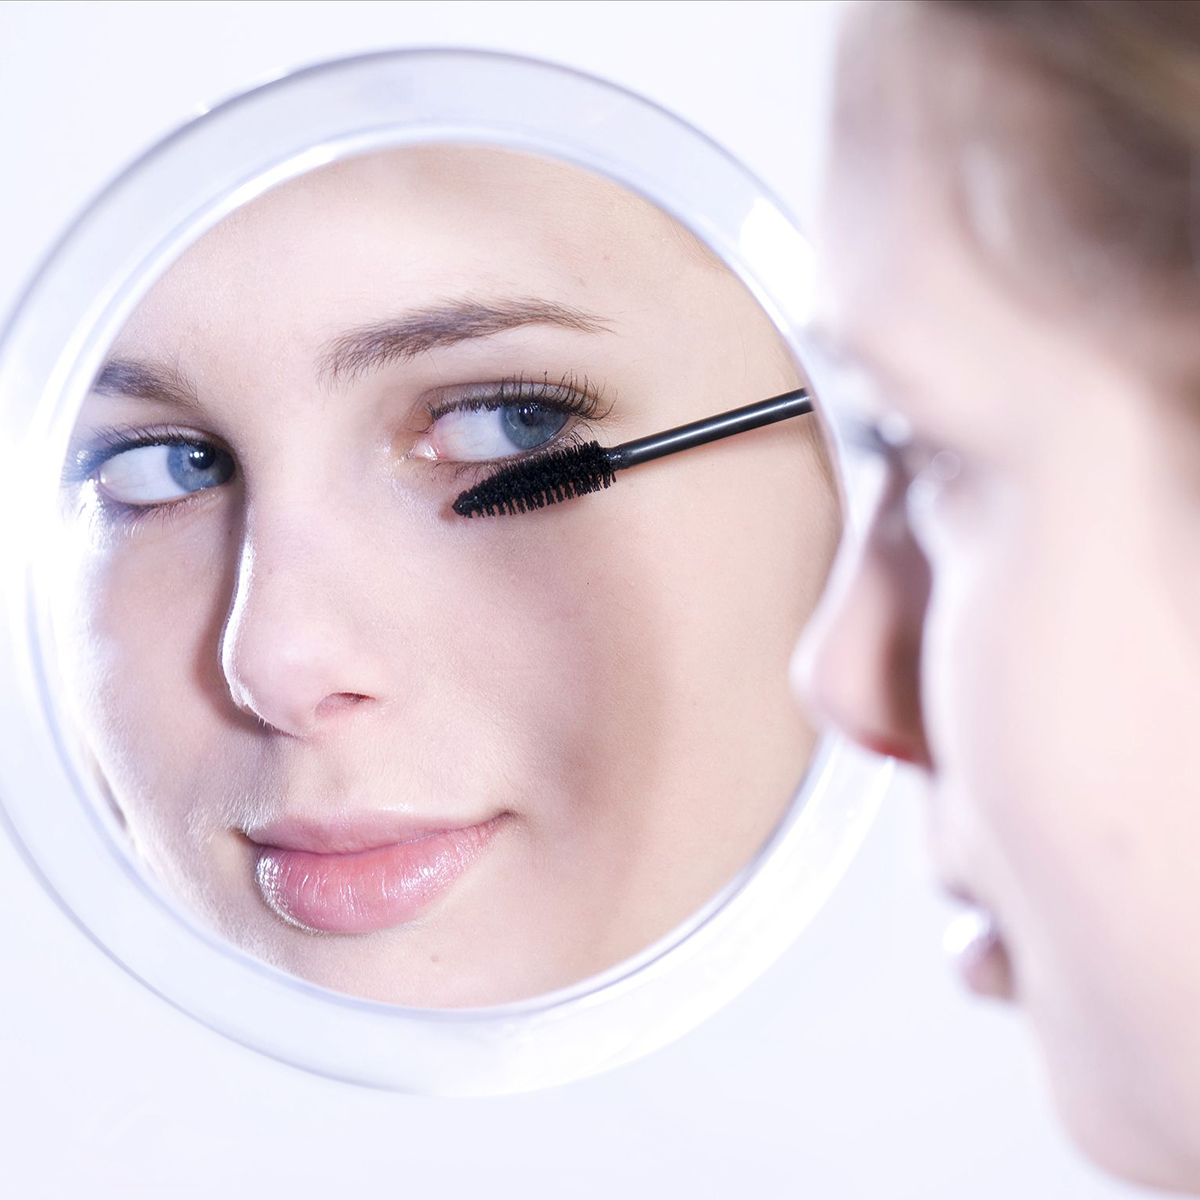 Frcolor 10X Magnifying Mirror with 3 Suction Cups, Cosmetic Make Up Mirror Pocket Mirror 5.9 Inch (White)